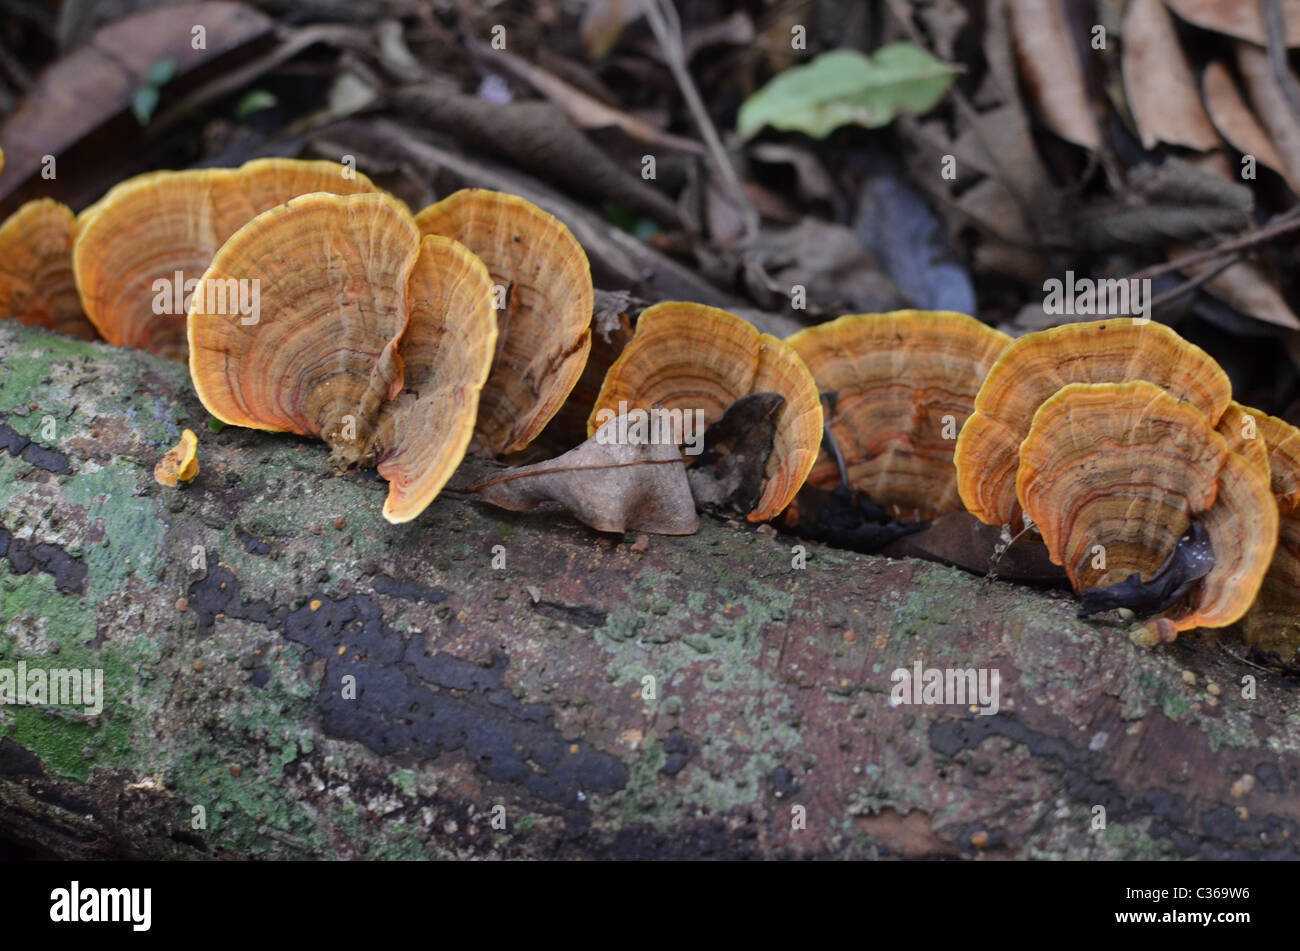 Bracket fungi growing on a decaying log at Mt Glorious in Queensland. - Stock Image